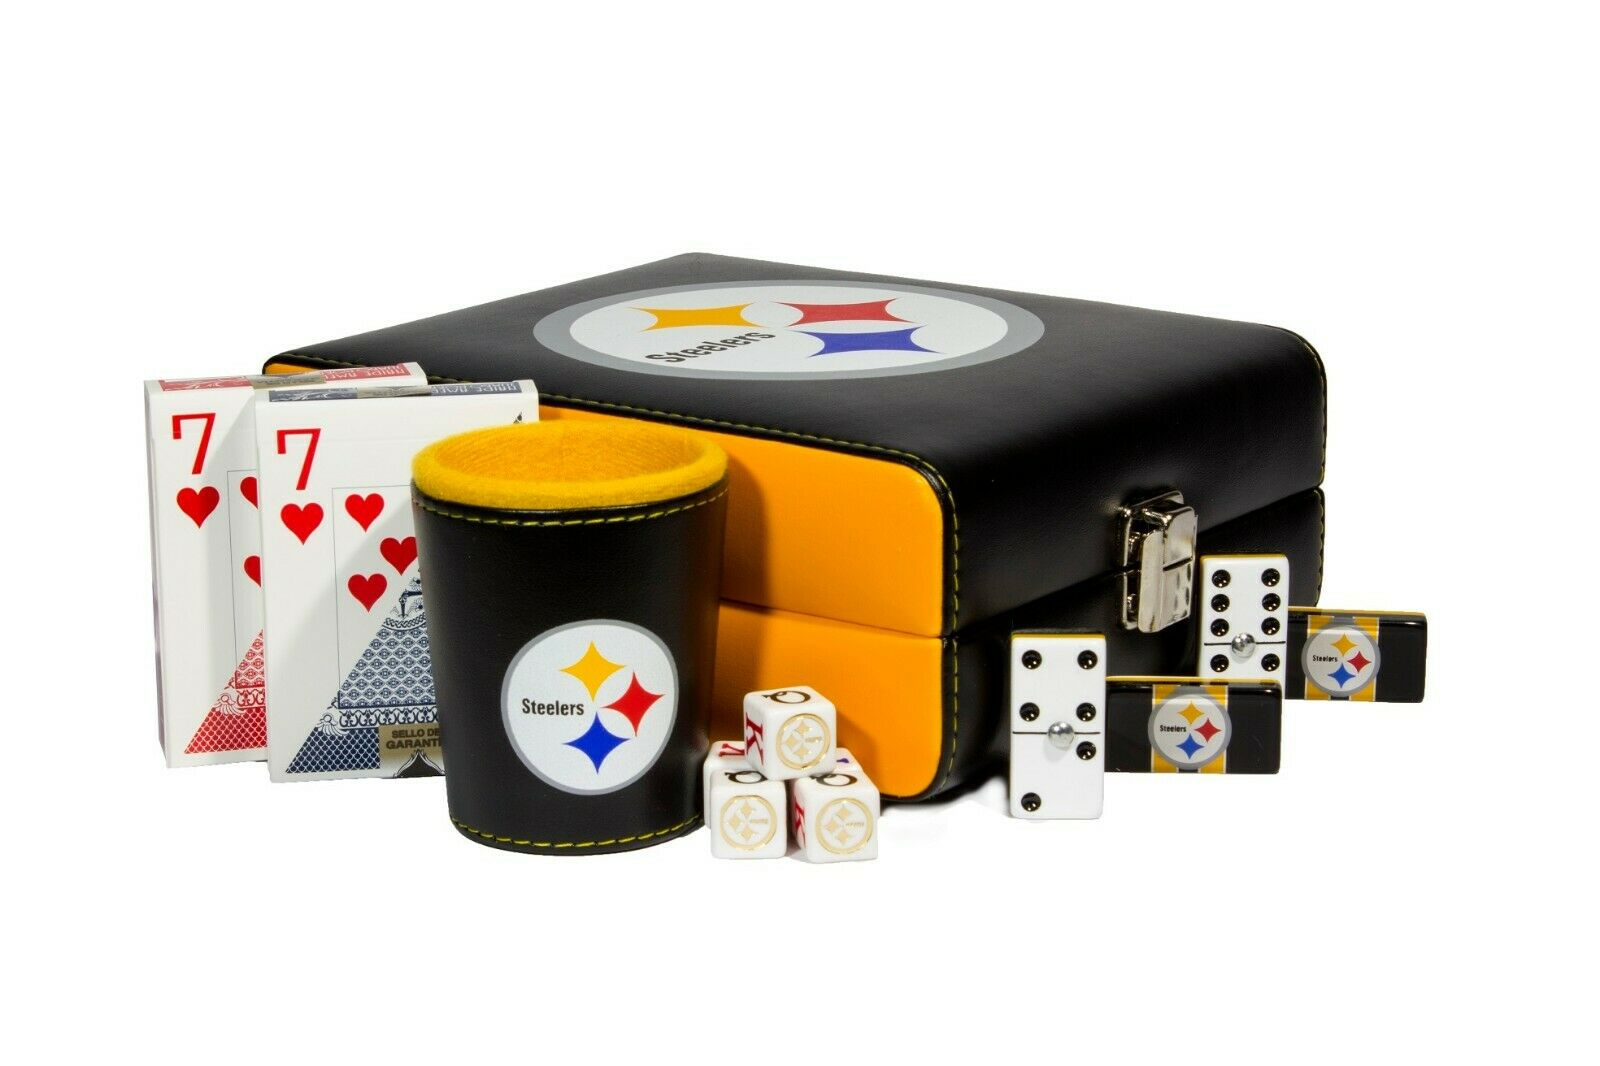 Pittsburgh Steelers Deluxe Set 3 jeux  Domino, dés tasse, 2 poker cartes